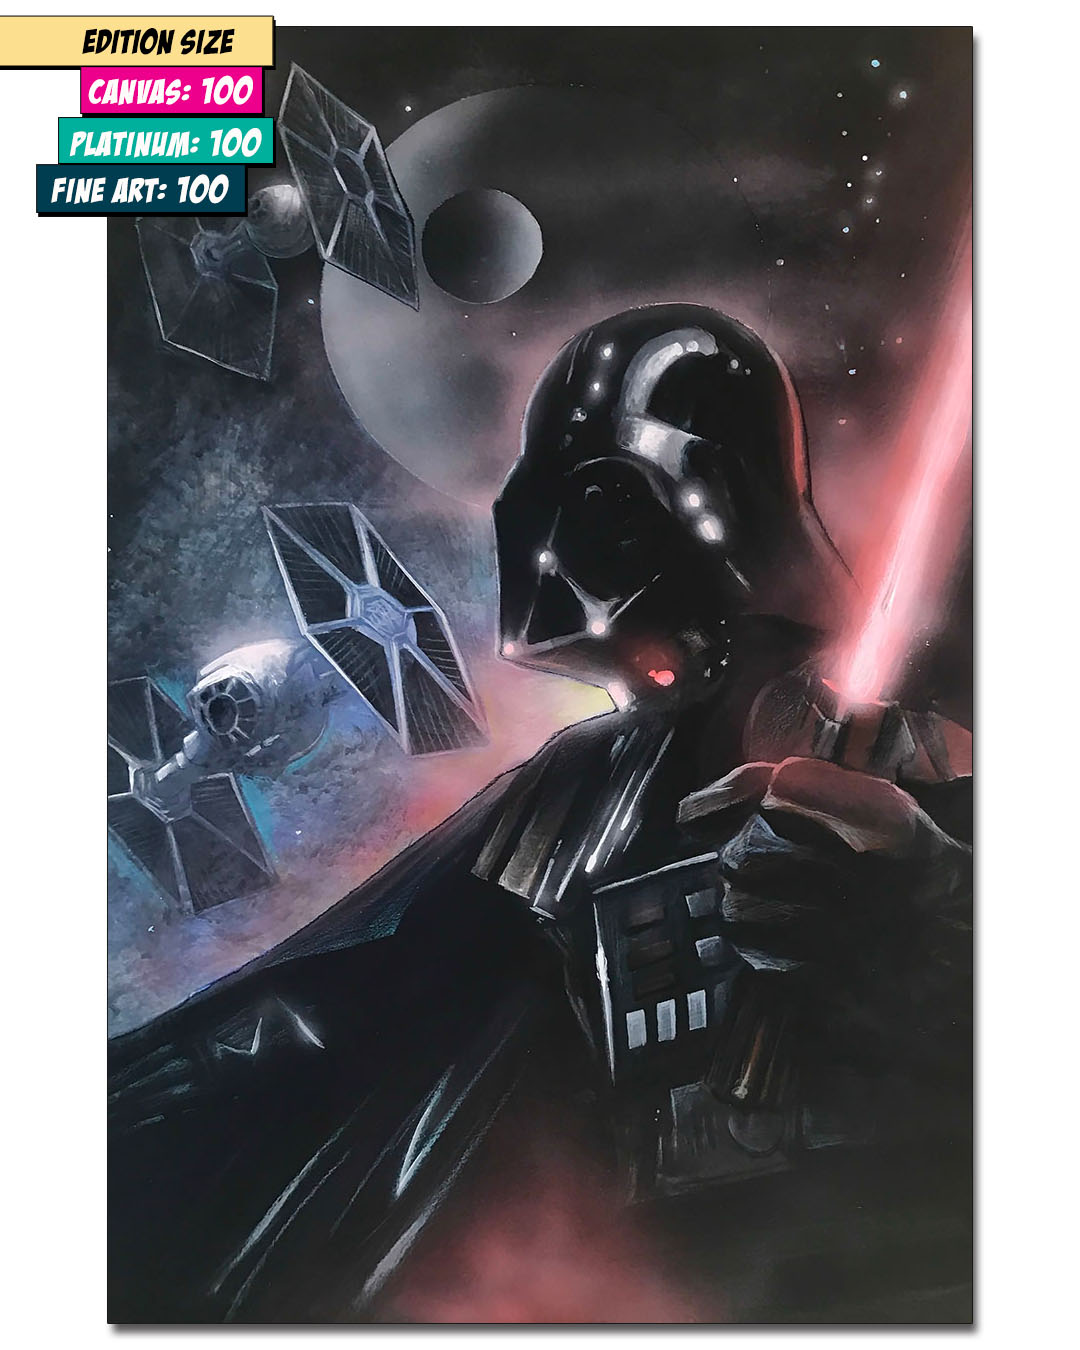 DARTH VADER: SITH LORD OF THE EMPIRE